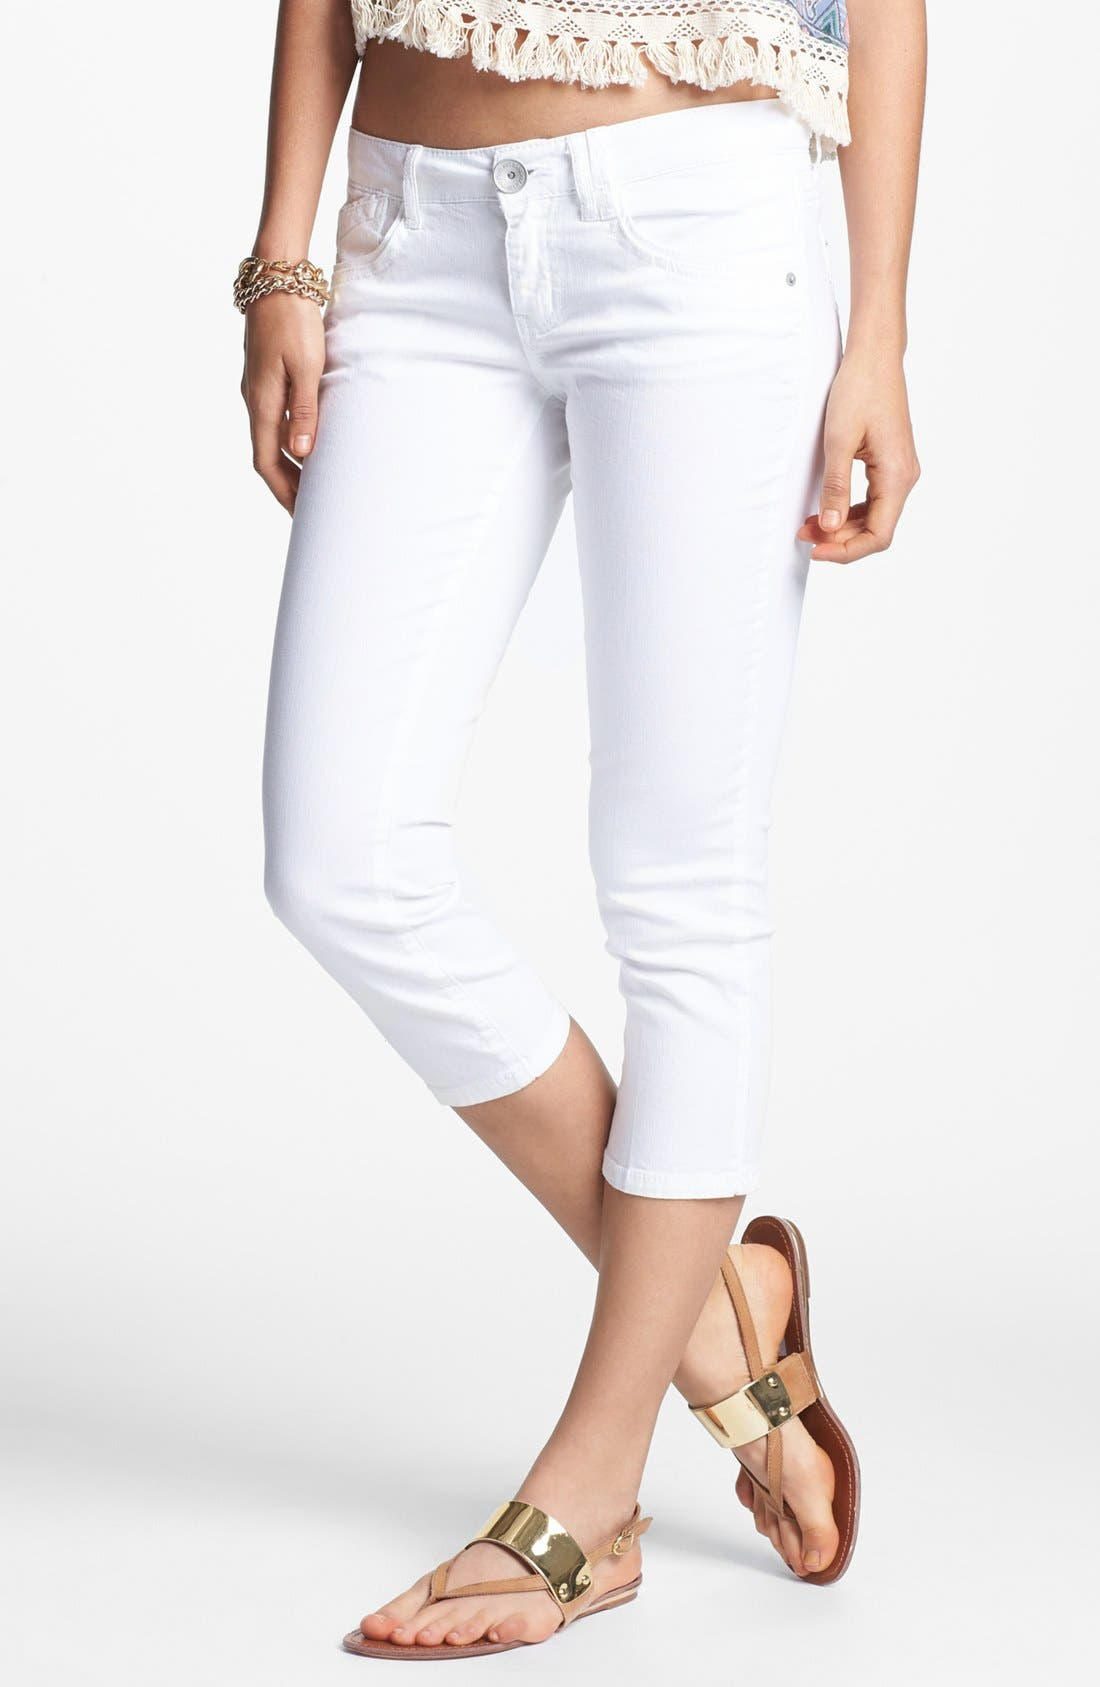 Alternate Image 1 Selected - Jolt Crop Skinny Jeans (White) (Juniors)